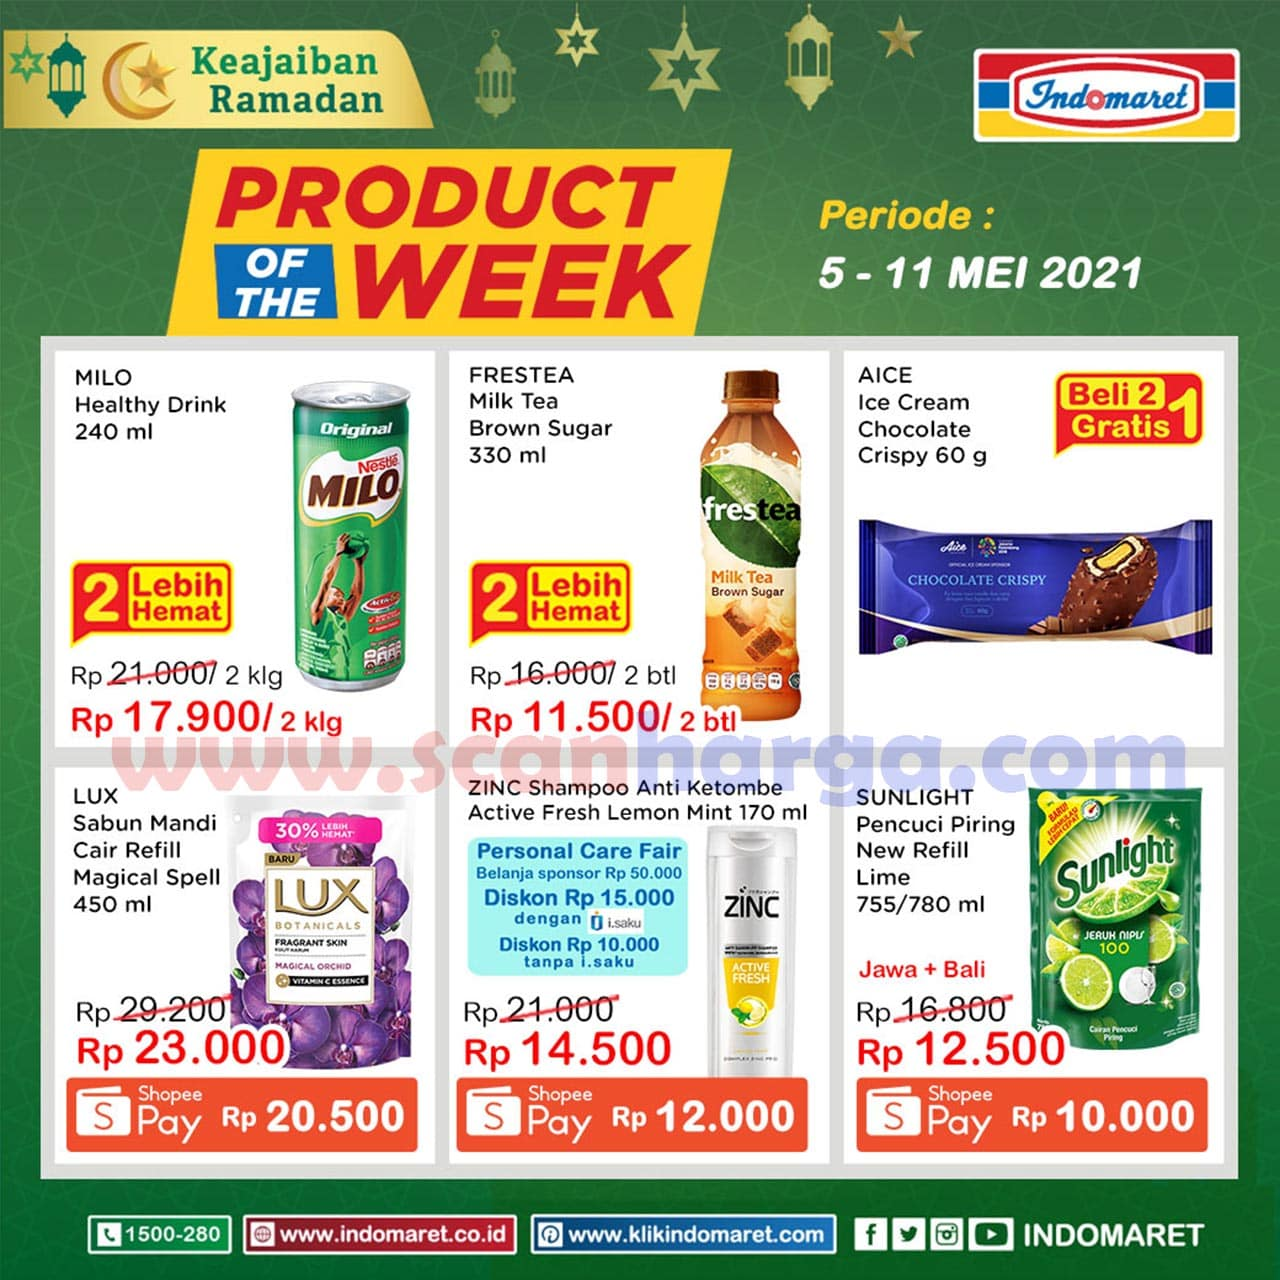 Katalog Indomaret Product Of The Week Promo PTW 5 - 11 Mei 2021